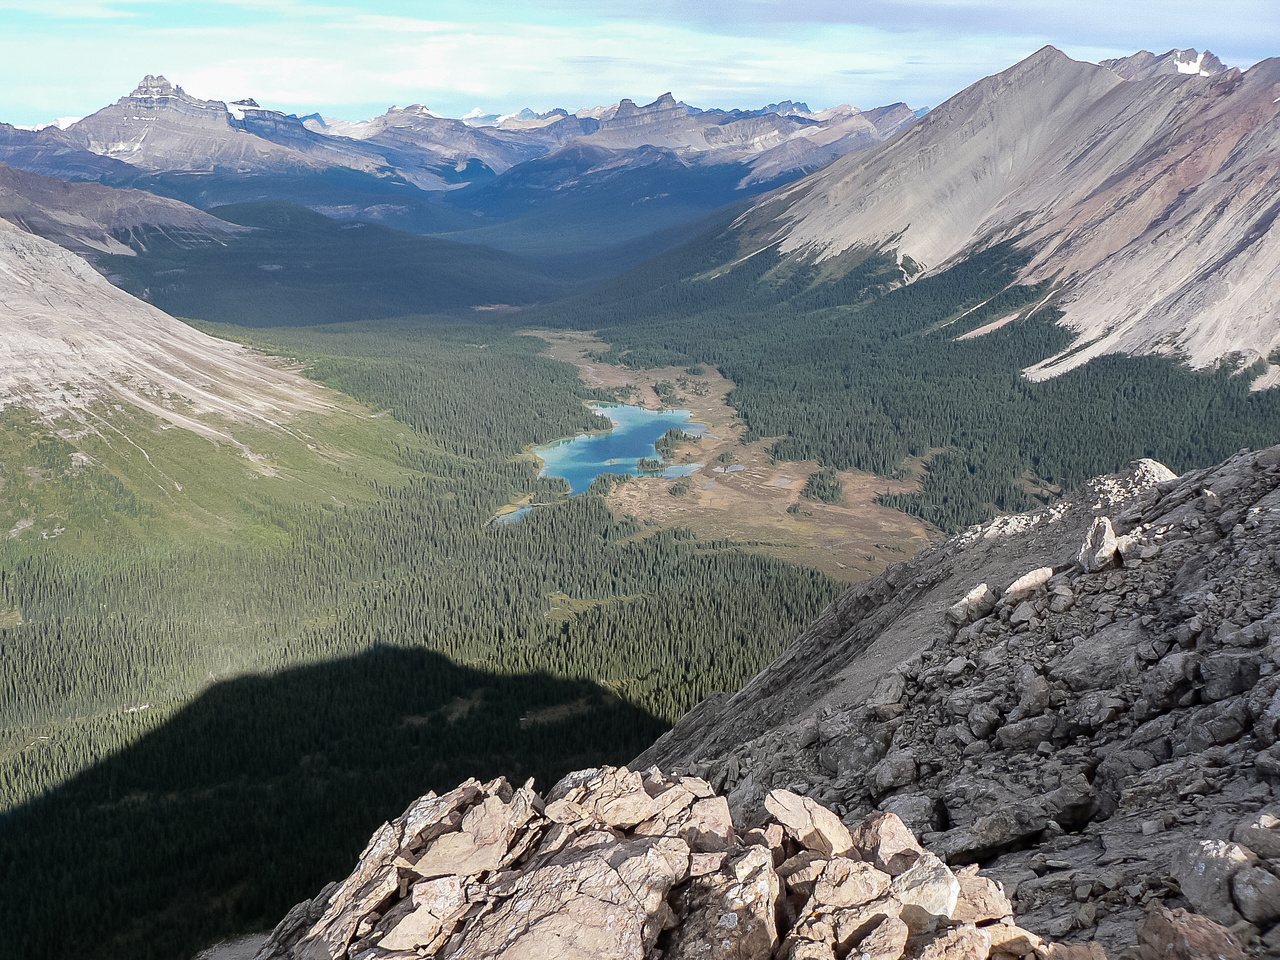 Looking over the Red Deer Lakes up the Little Pipestone River towards Hector and Molar Mountain.